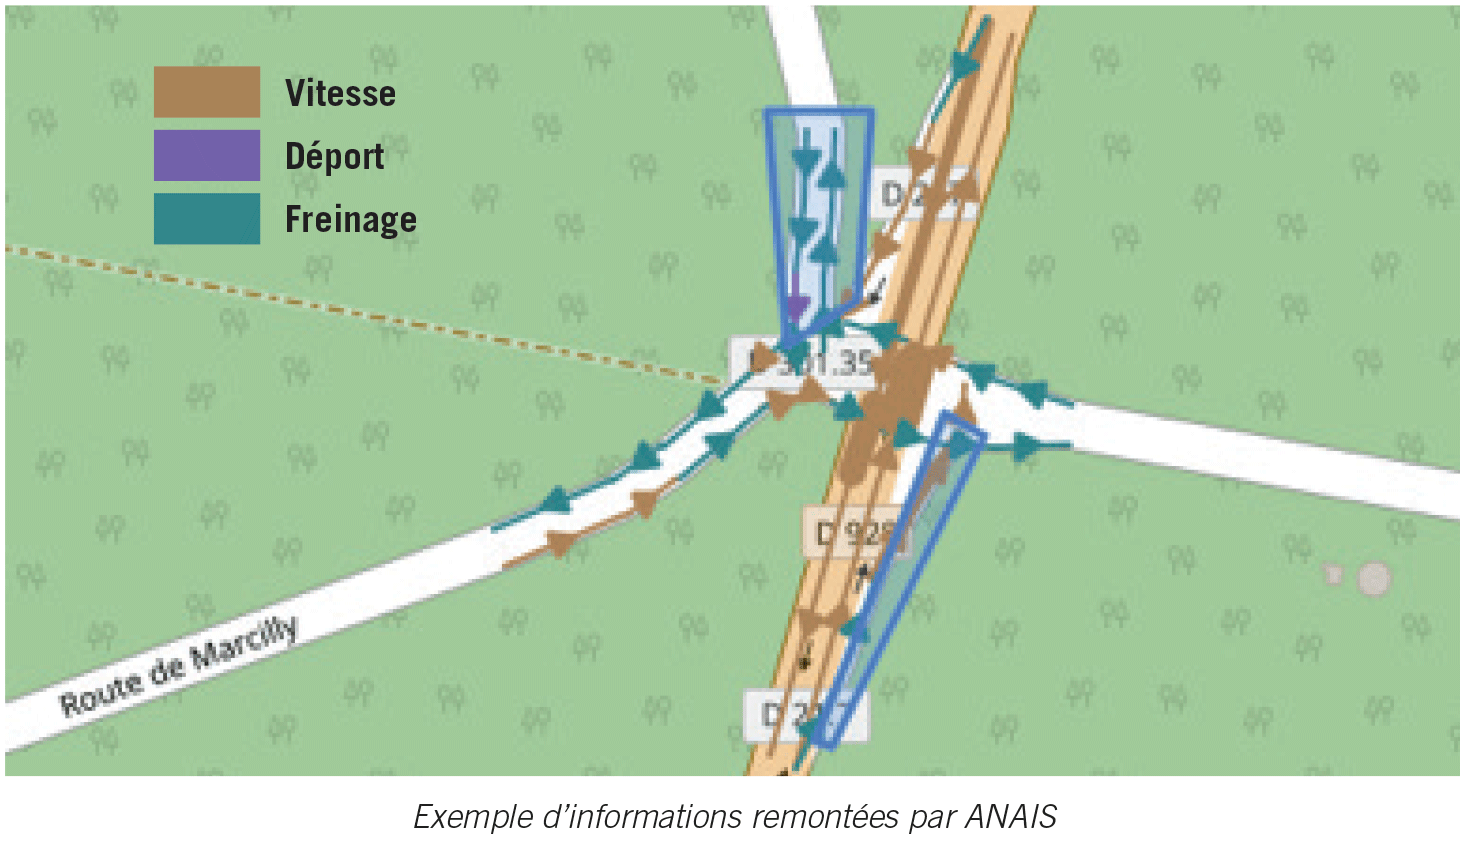 exemple-informations-anais-colas